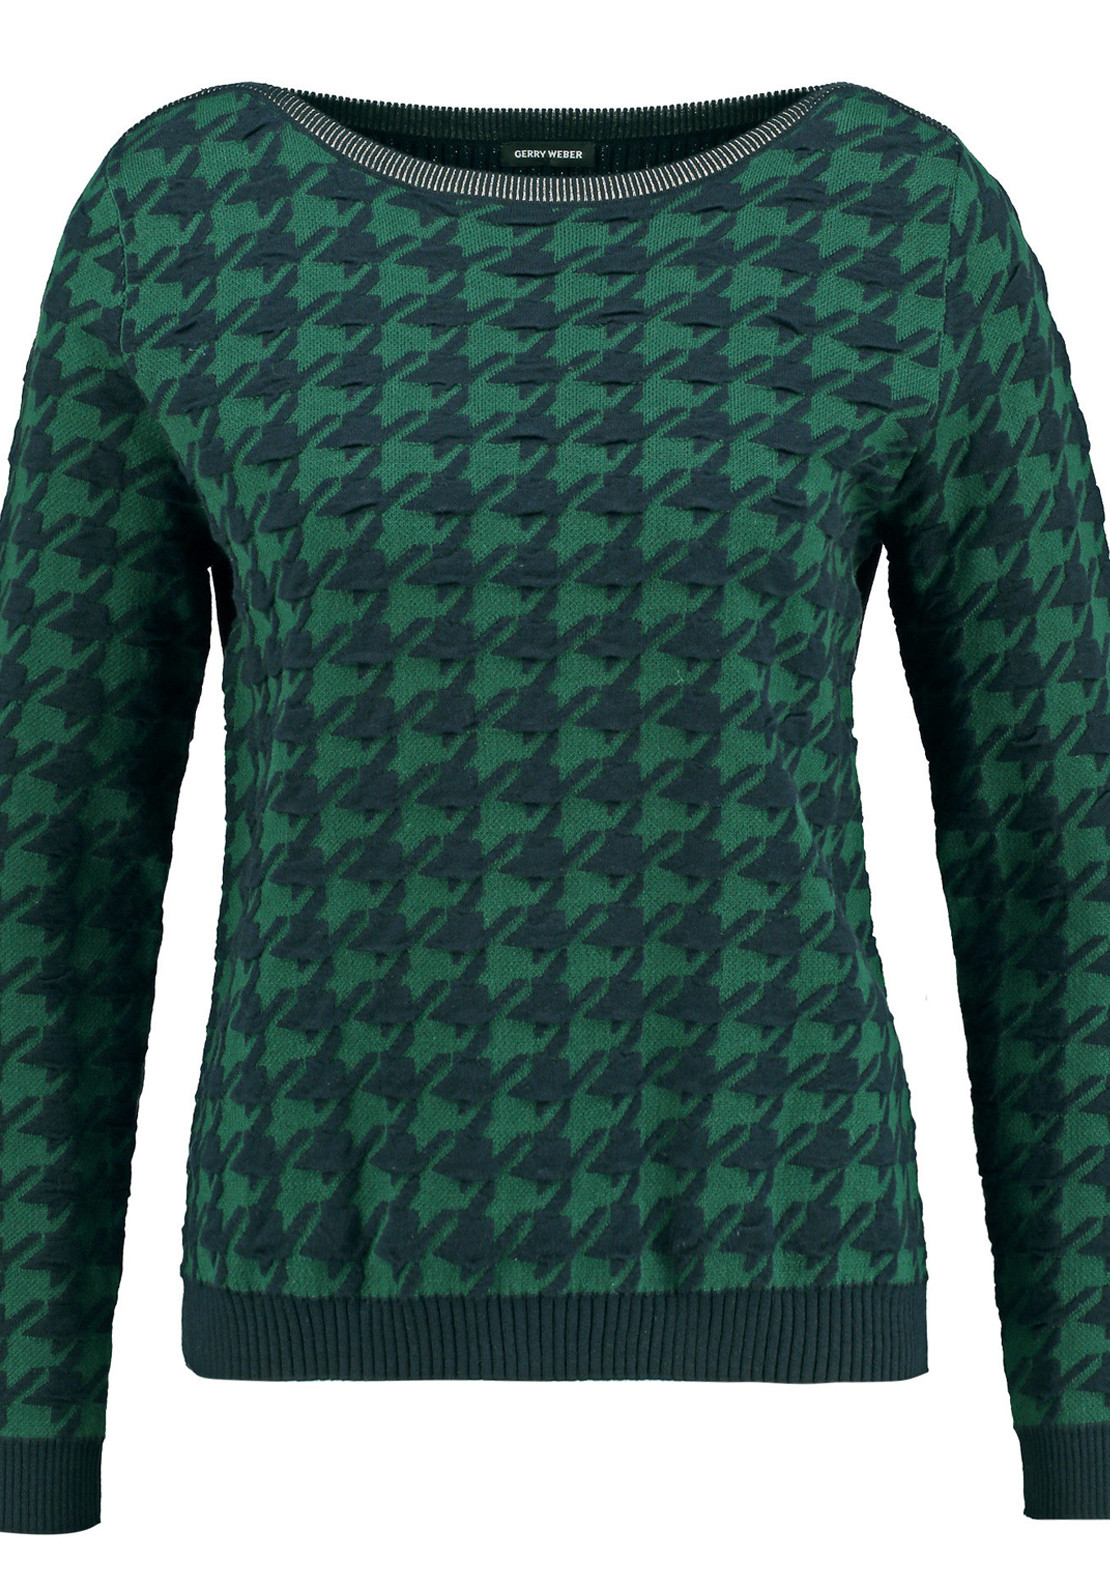 Gerry Weber Houndstooth Print Cotton Sweater Jumper, Green and Navy